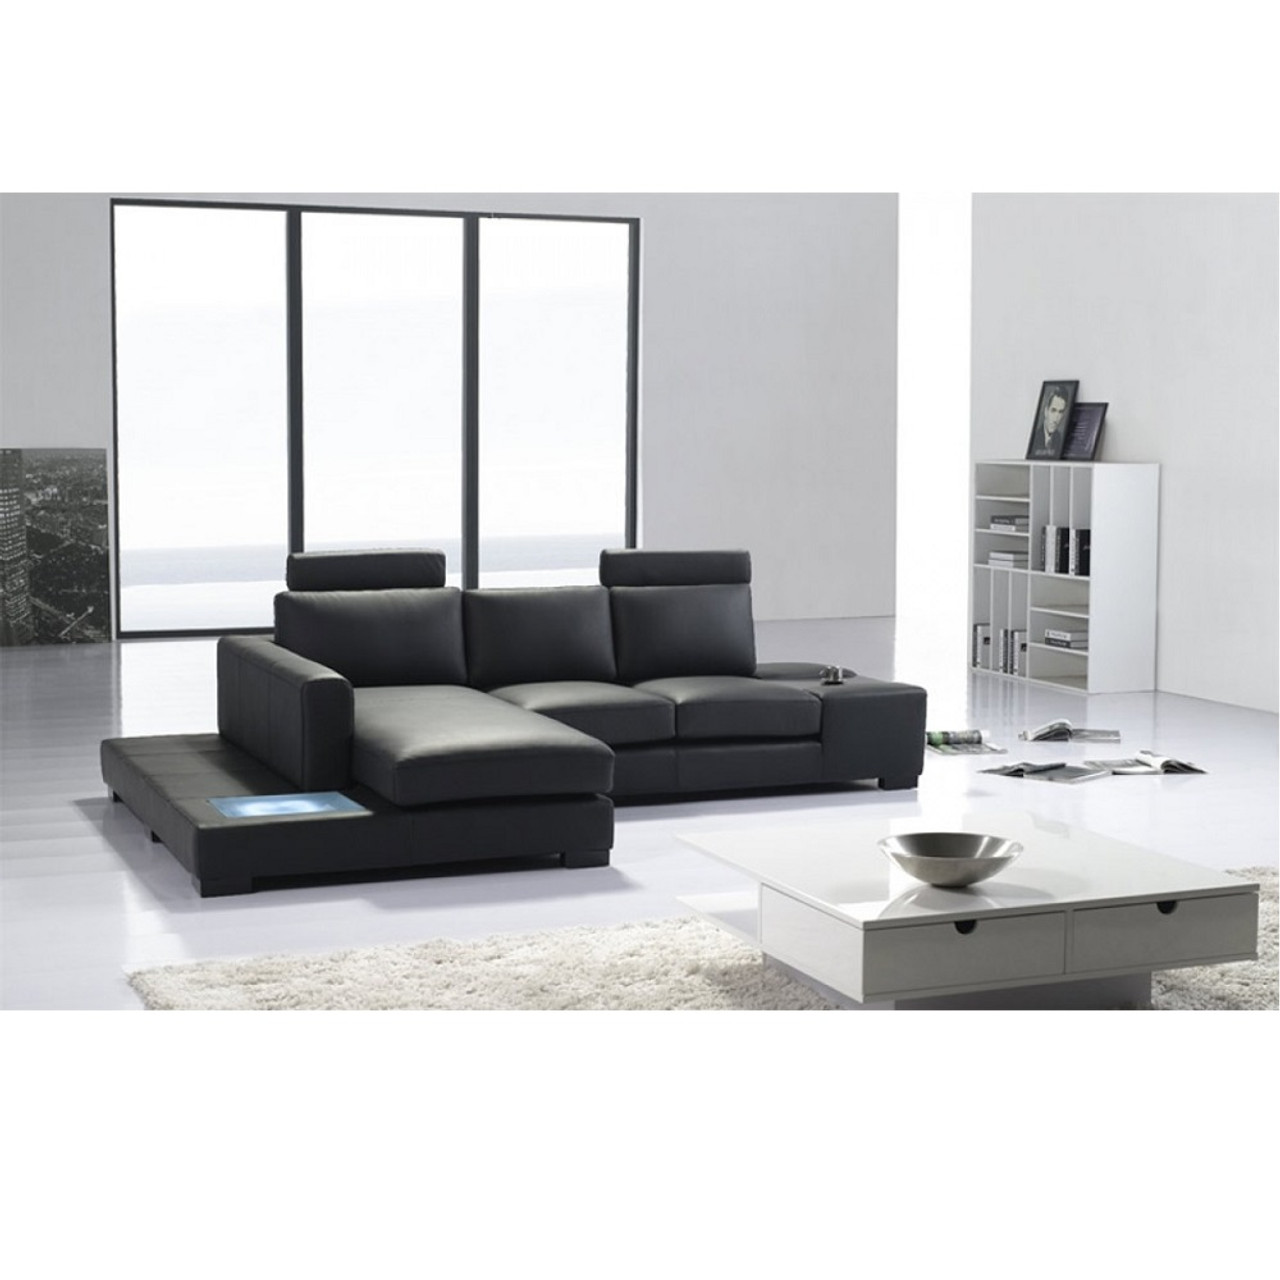 t35 mini modern white leather sectional sofa best brands 2018 canada divani casa black eco with on sale